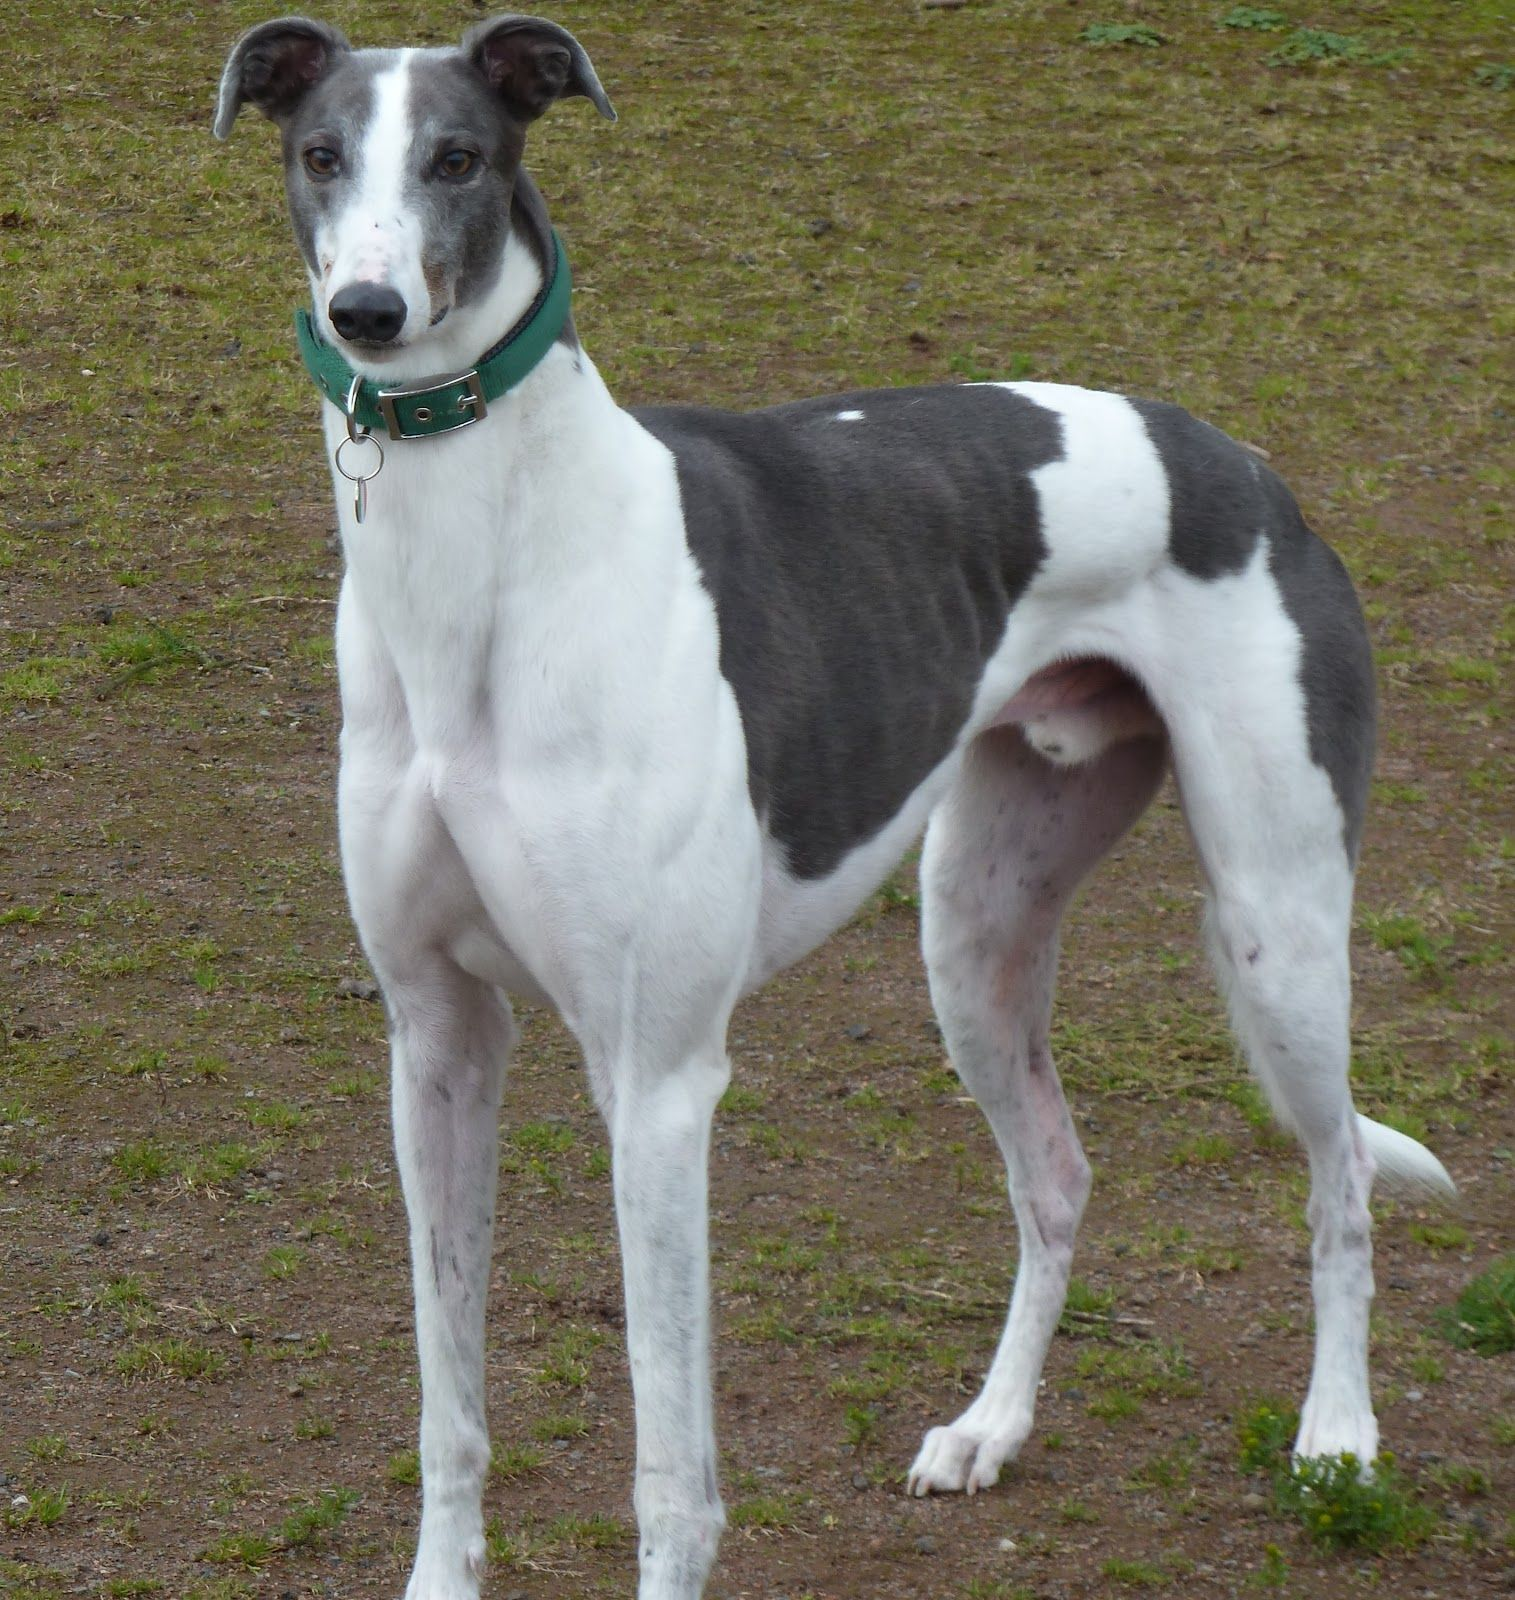 Mudidog Photo Add Photos Polish Greyhound Dog In Your Blog Grey Hound Dog Greyhound Dog Breed Greyhound Puppy